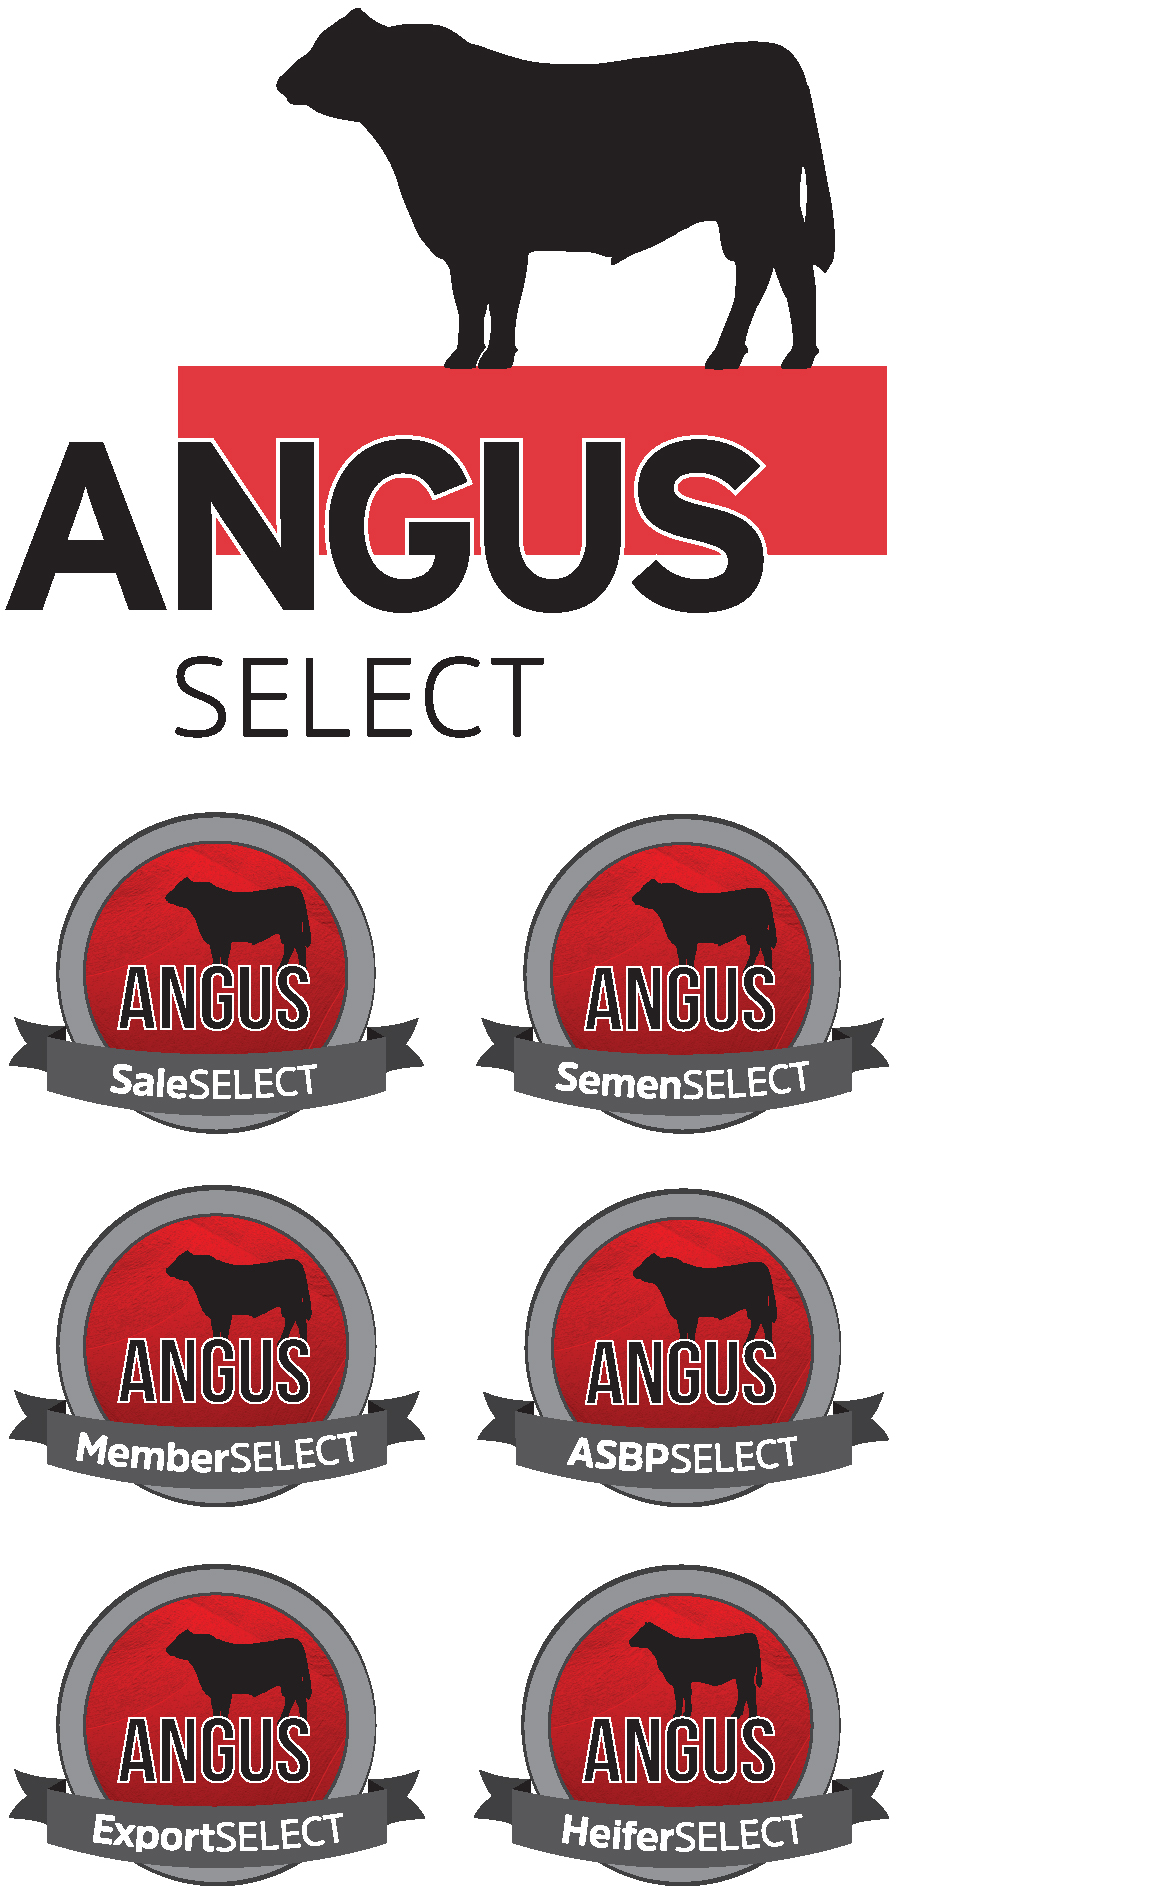 Select-Tools-AngusSELECT-WITH-BADGES